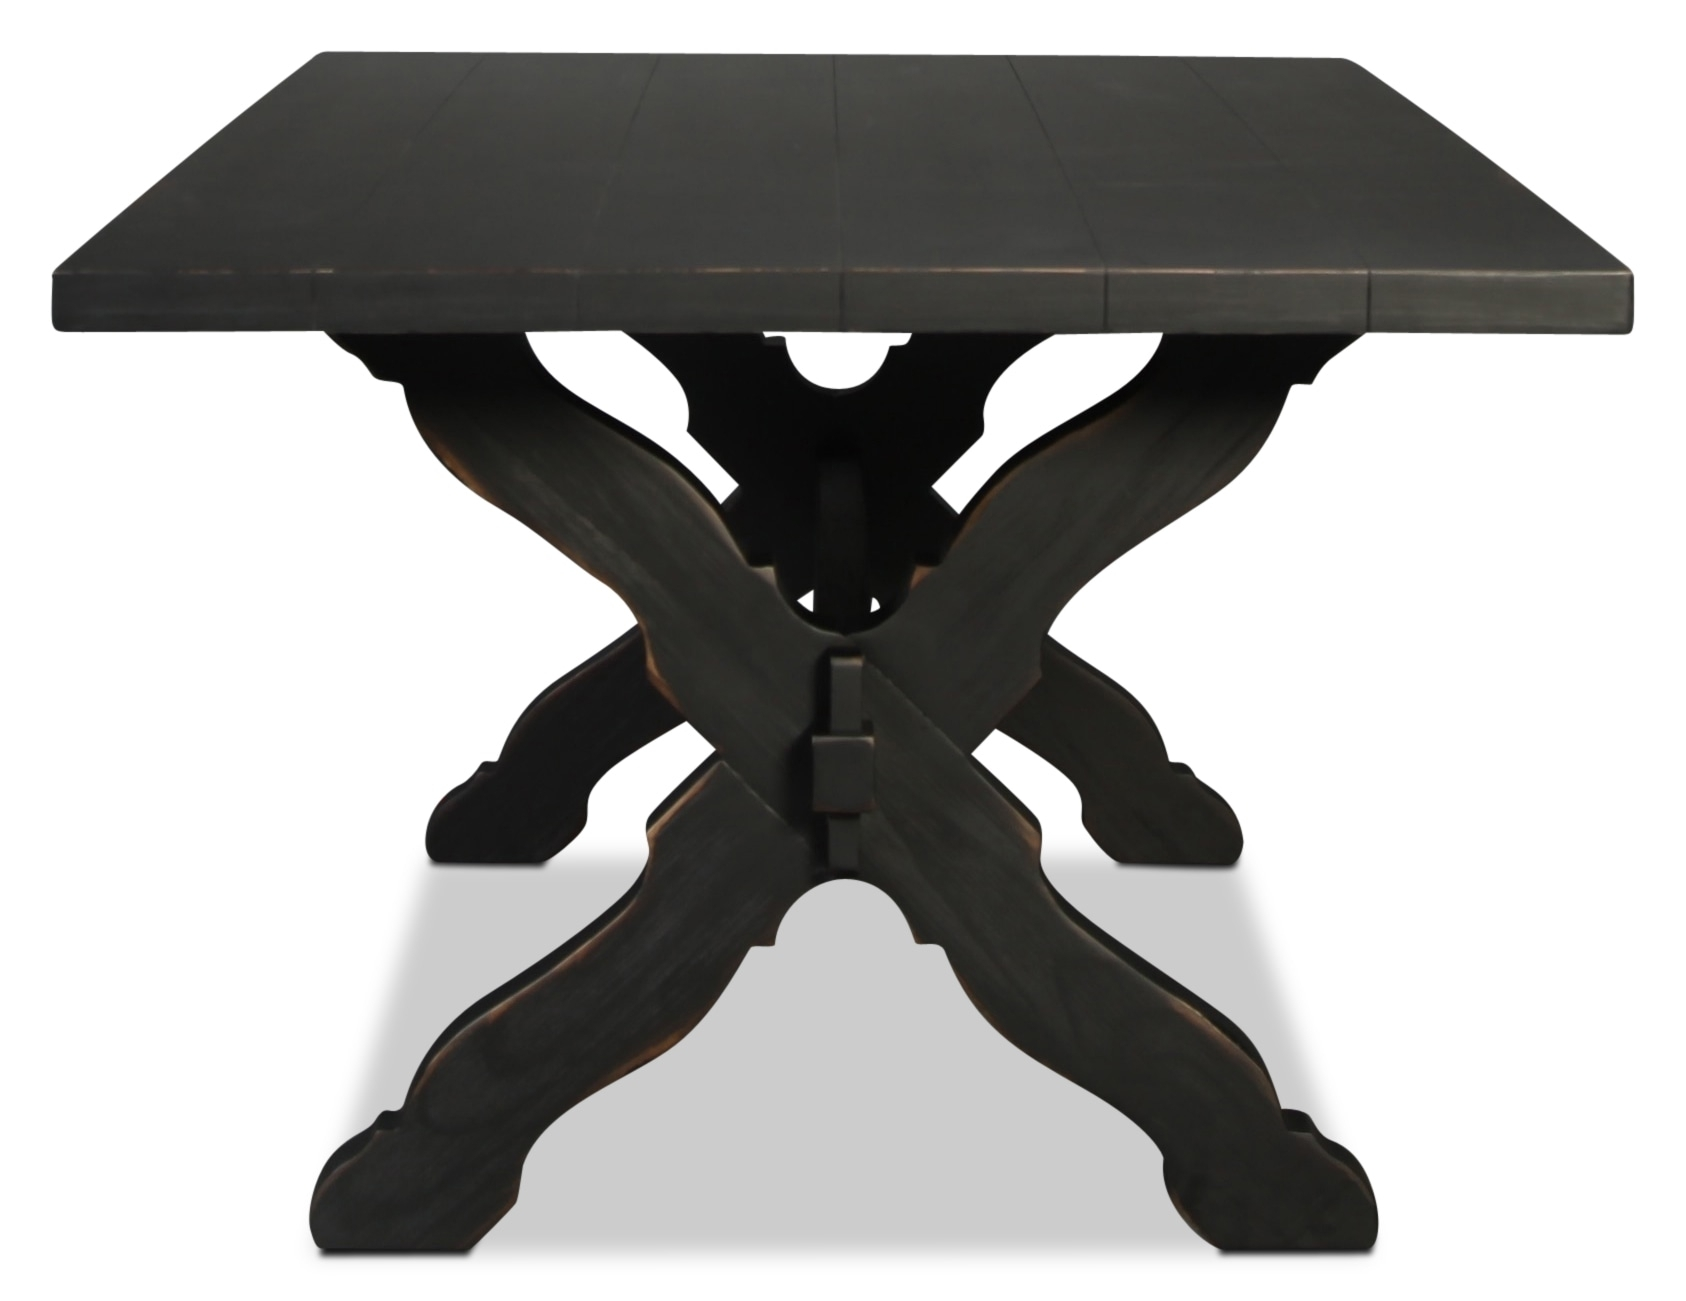 Magnolia Home Primitive Sawbuck Dining Table | Intended For Best And Newest Magnolia Home Sawbuck Dining Tables (Photo 17 of 20)